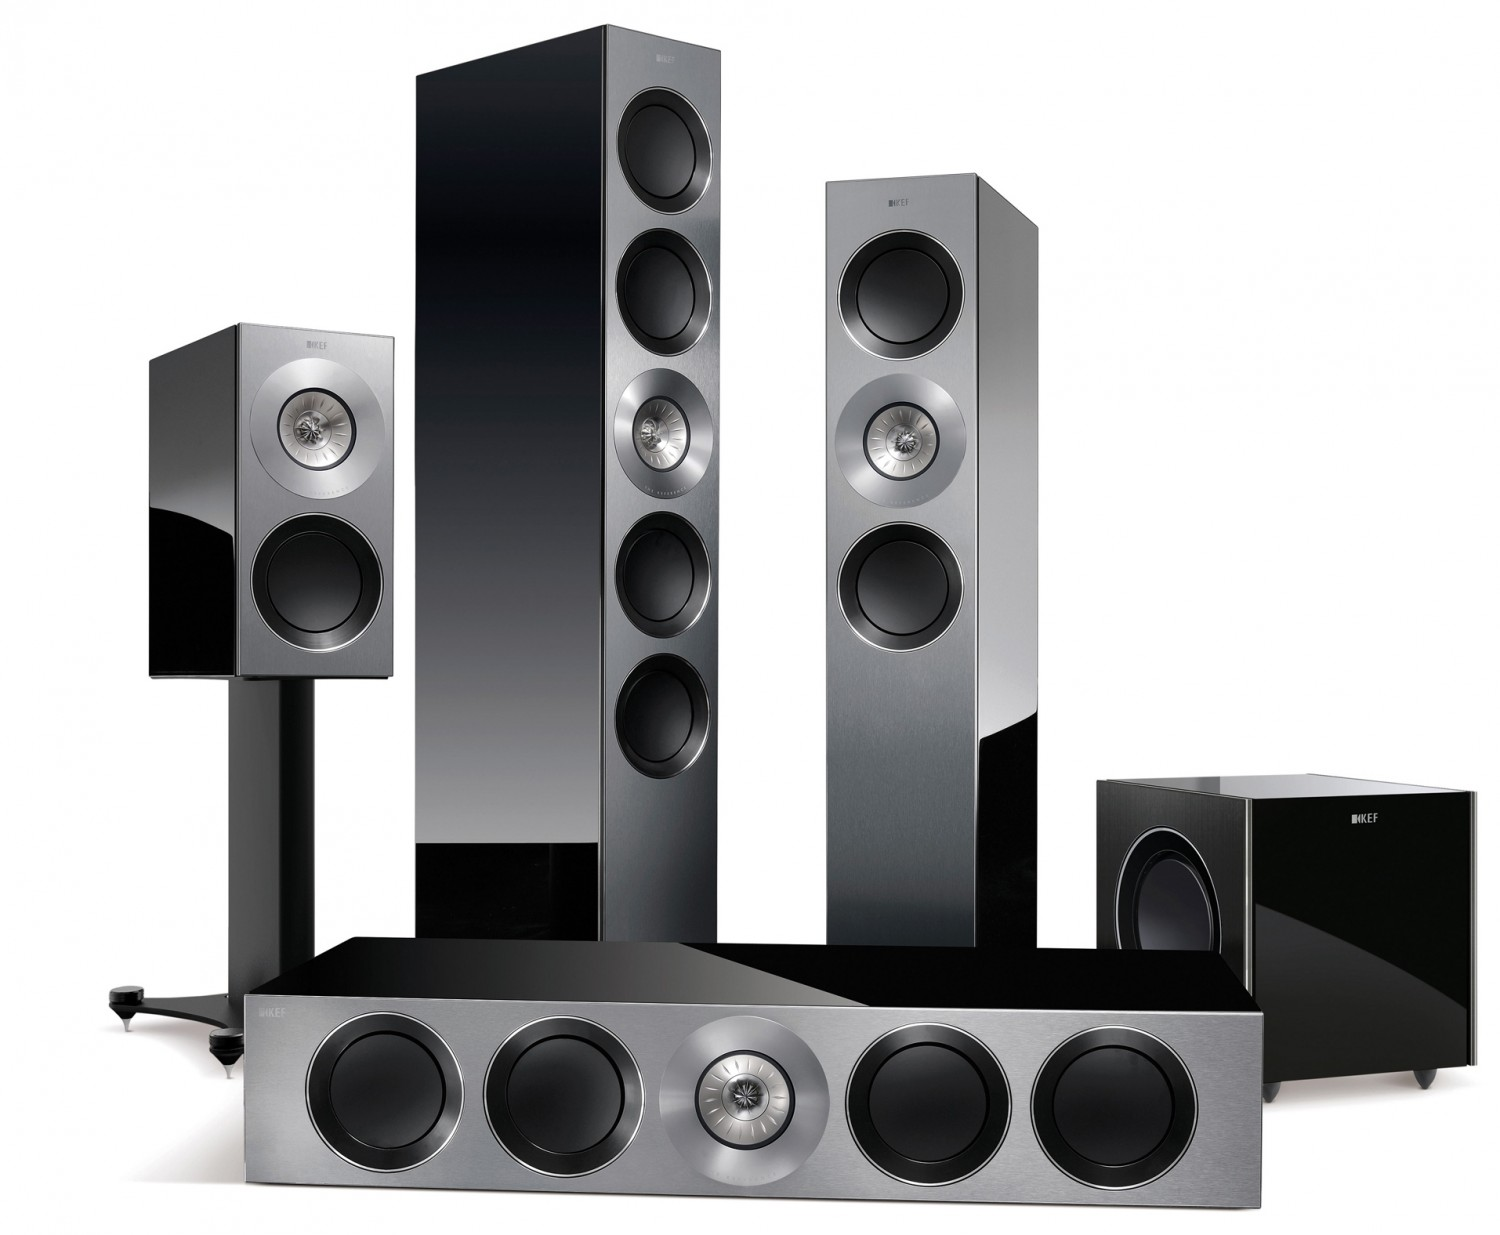 test lautsprecher surround kef reference 5 1 set sehr. Black Bedroom Furniture Sets. Home Design Ideas